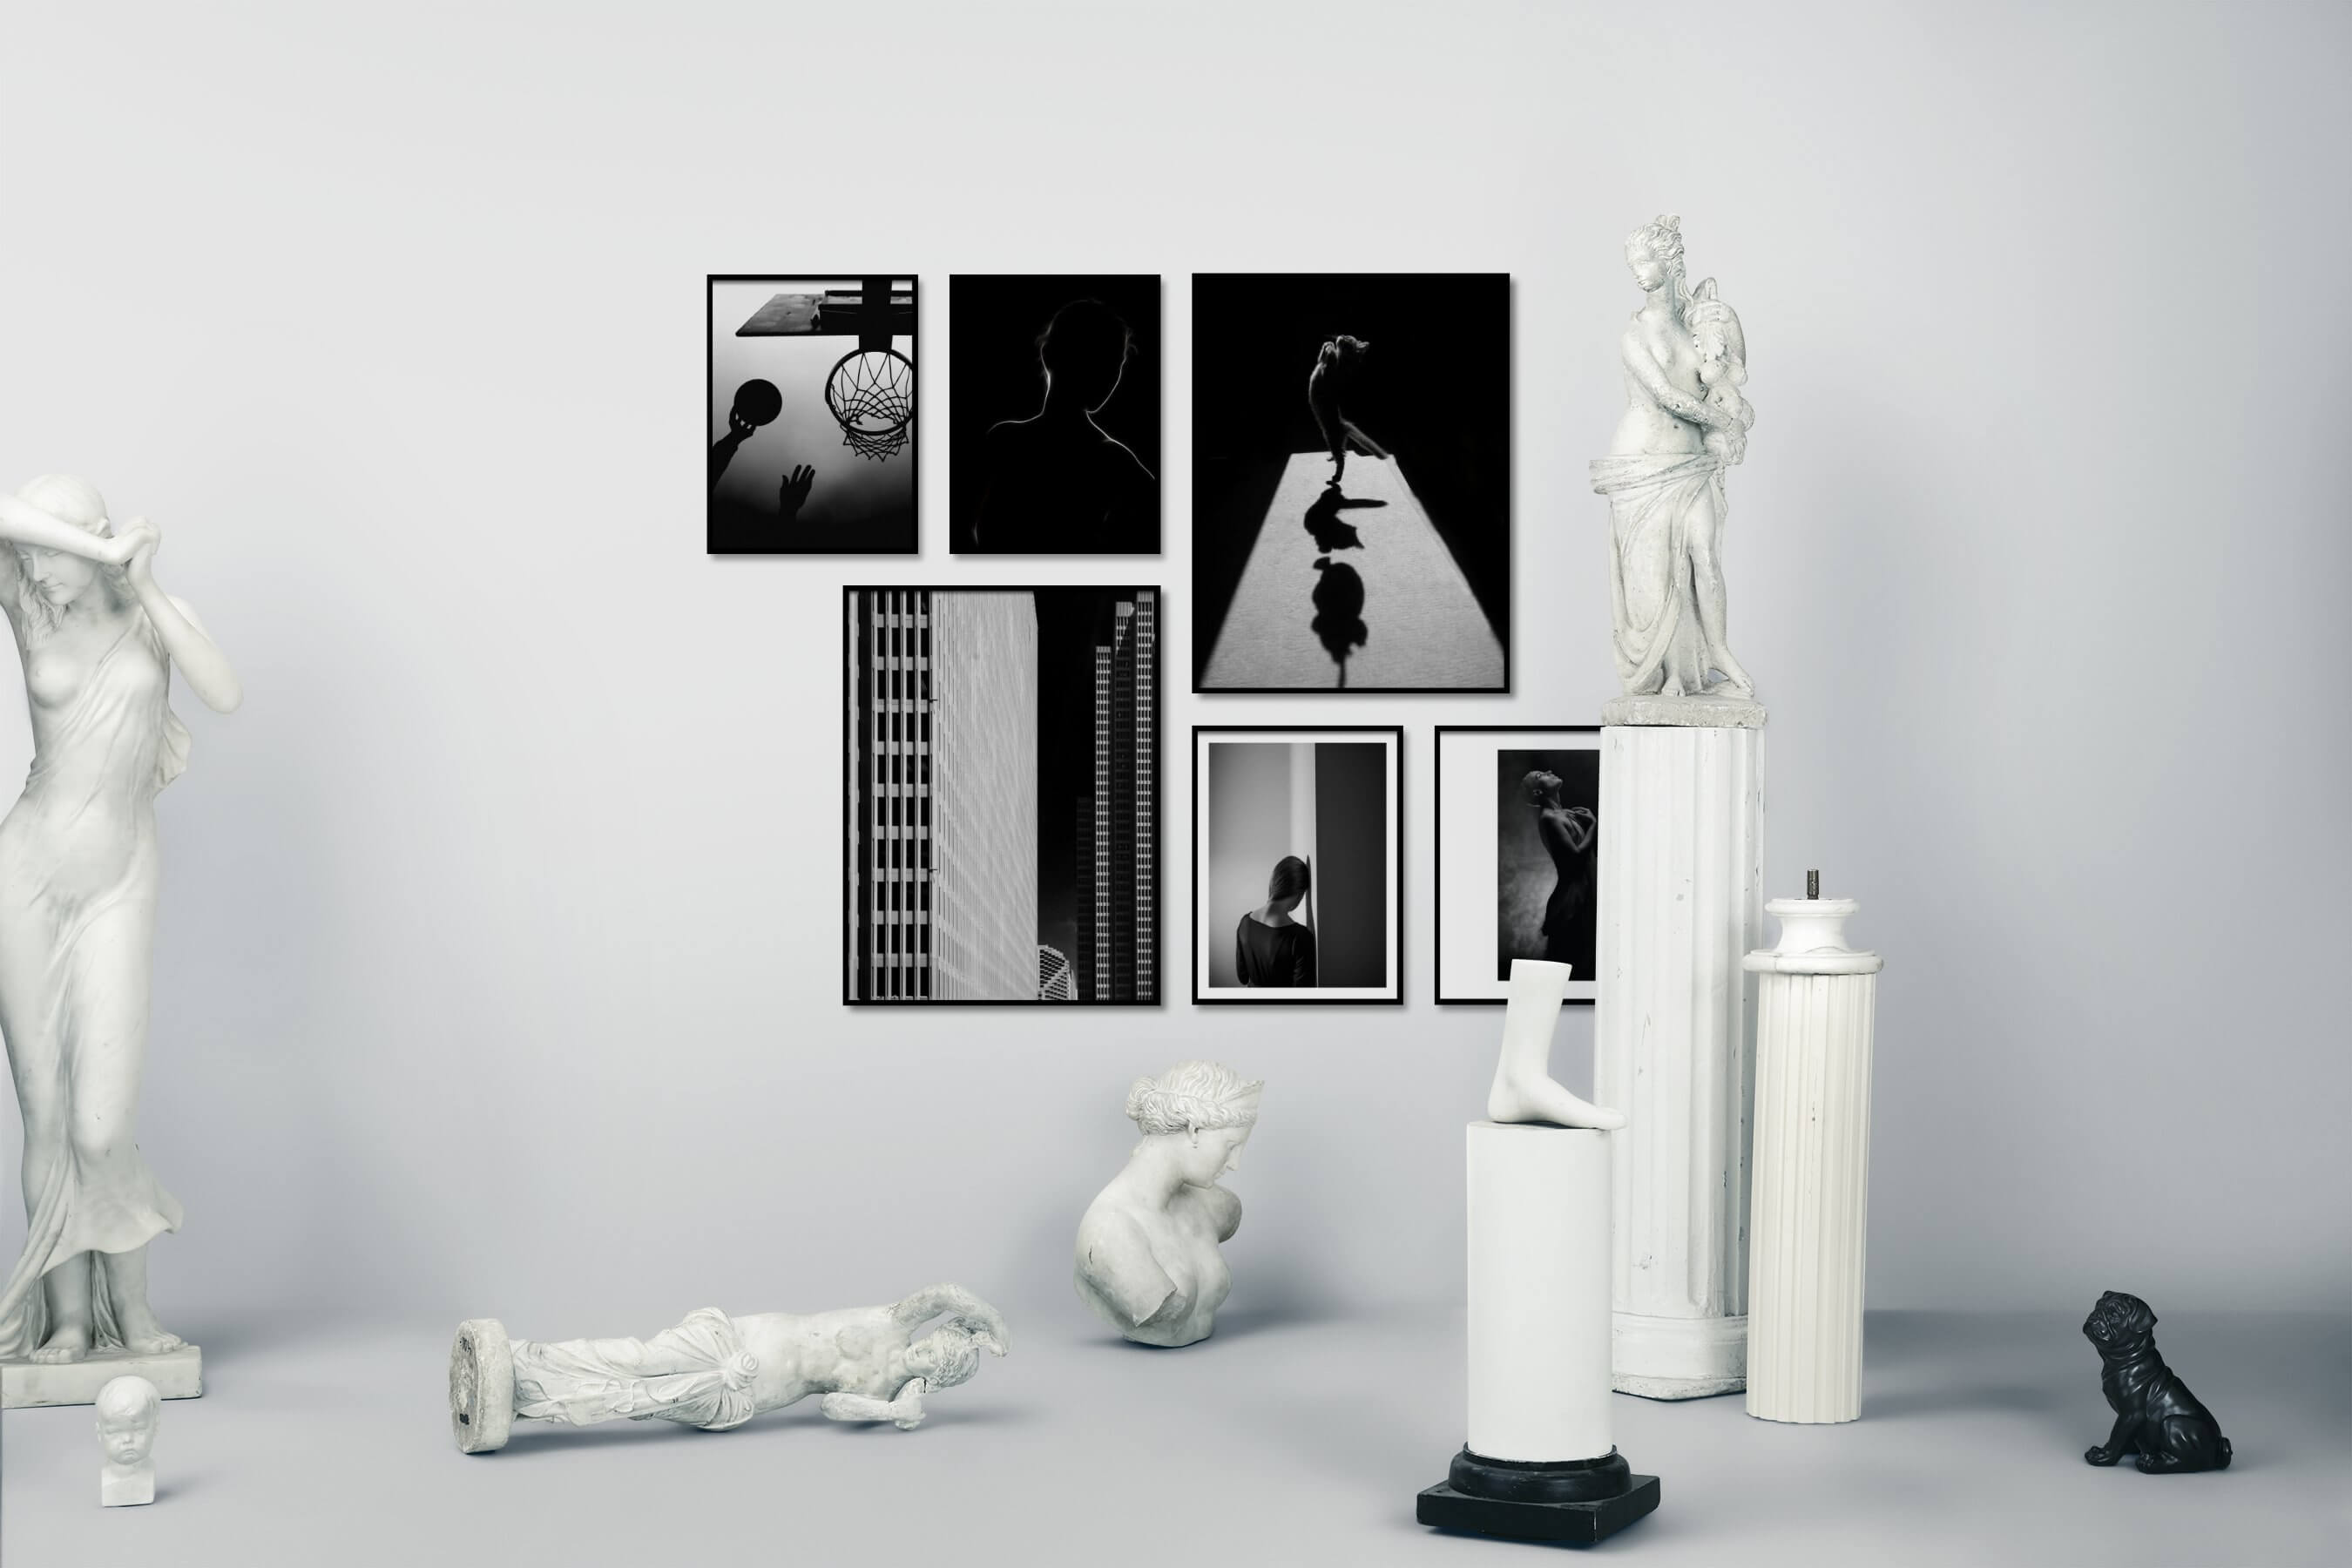 Gallery wall idea with six framed pictures arranged on a wall depicting Black & White, For the Moderate, Fashion & Beauty, Dark Tones, For the Minimalist, City Life, Americana, and Animals